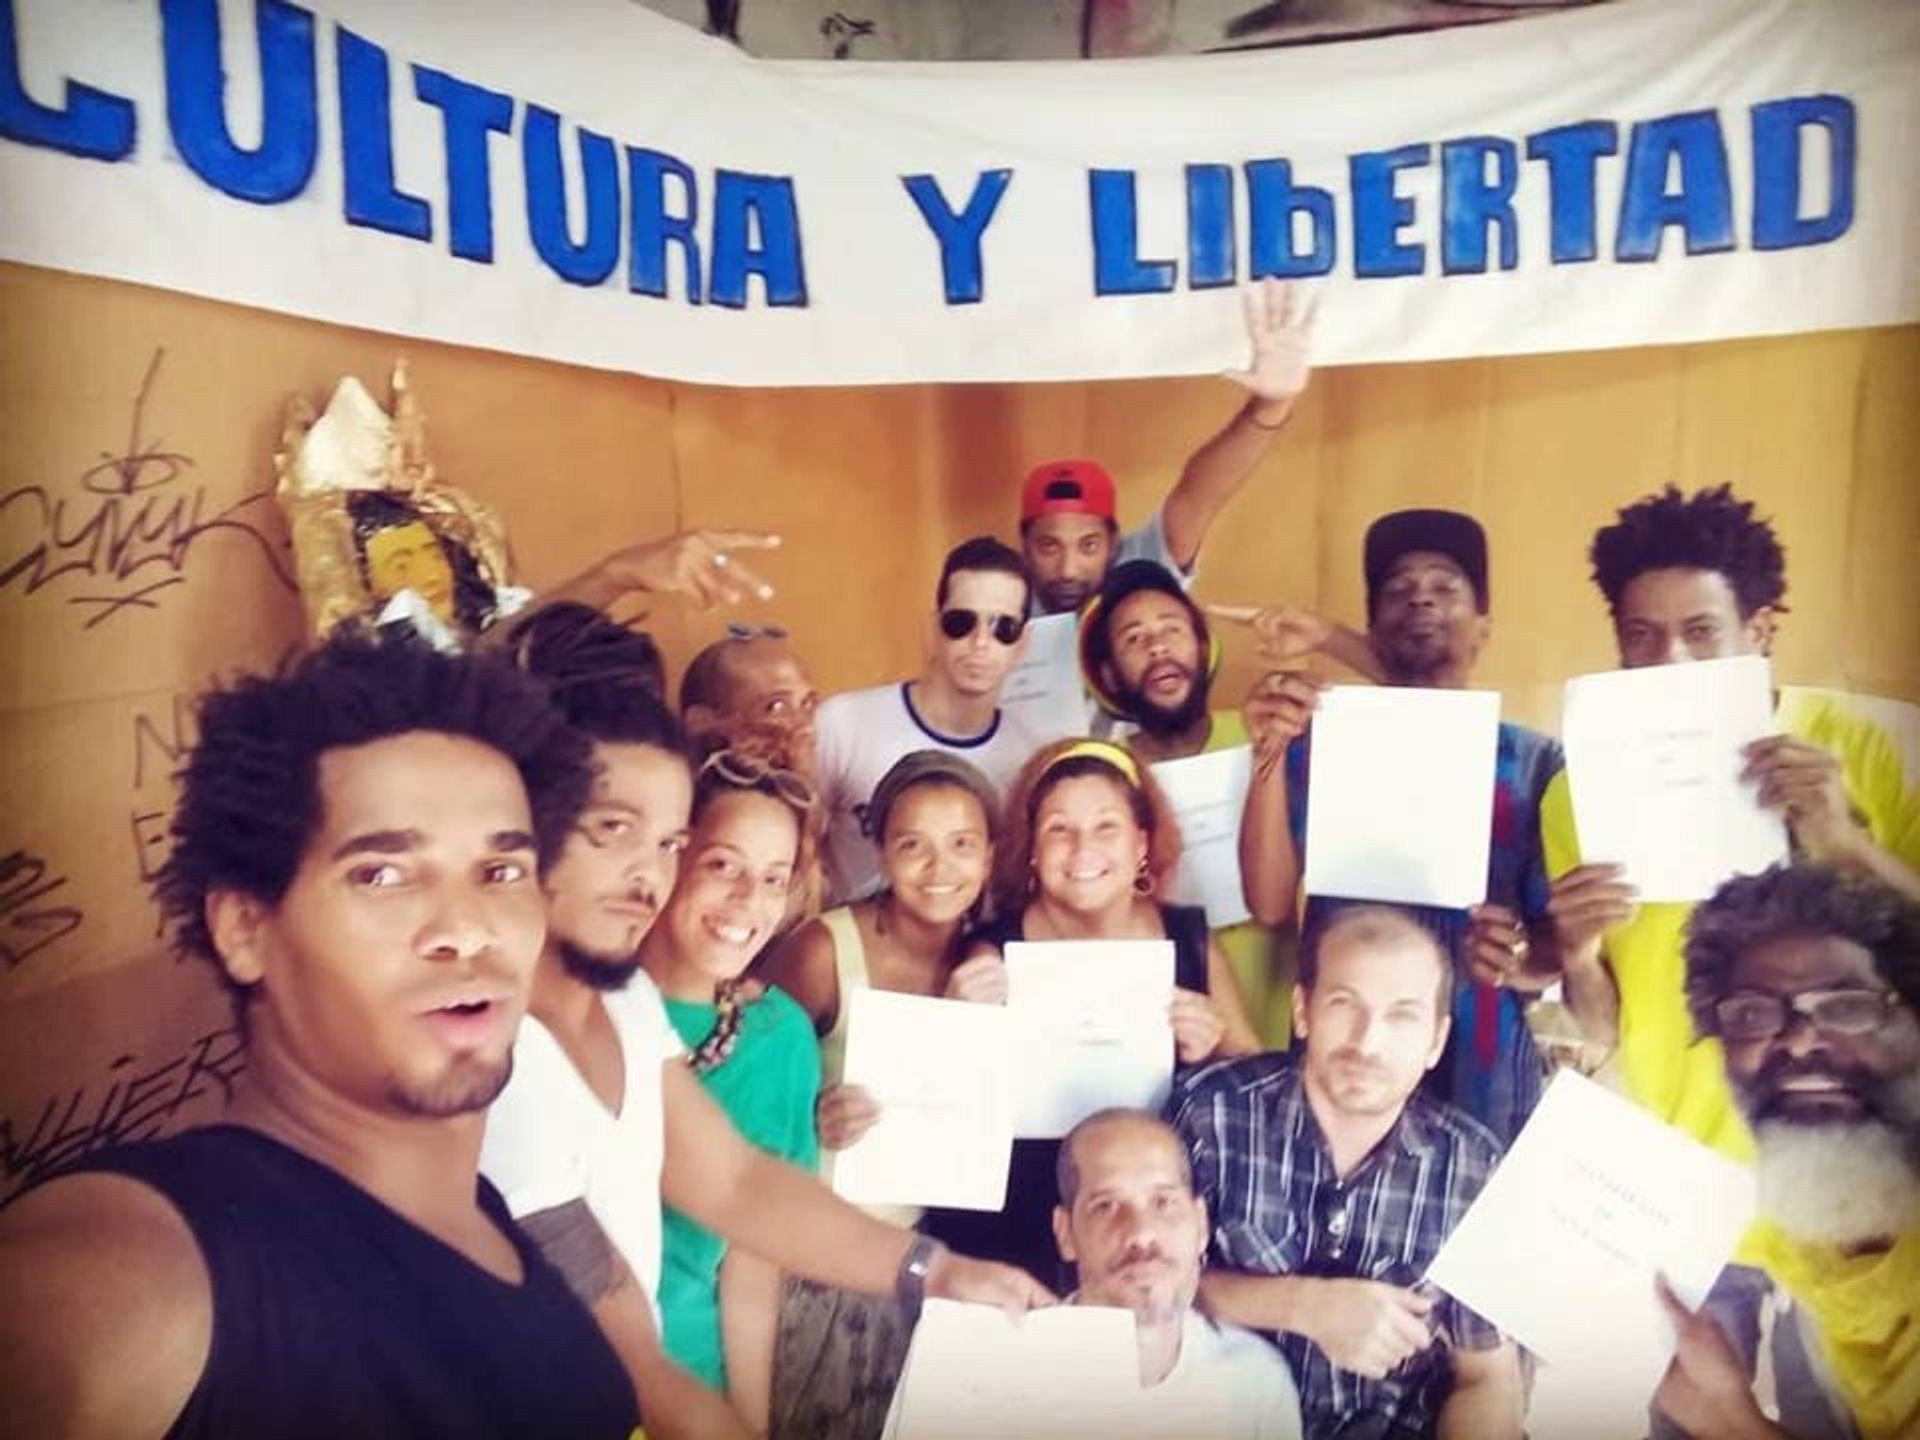 Cuban artists protesting Decree 349 sent an open letter to the participants of the Havana Bienal asking them to act in solidarity against the law